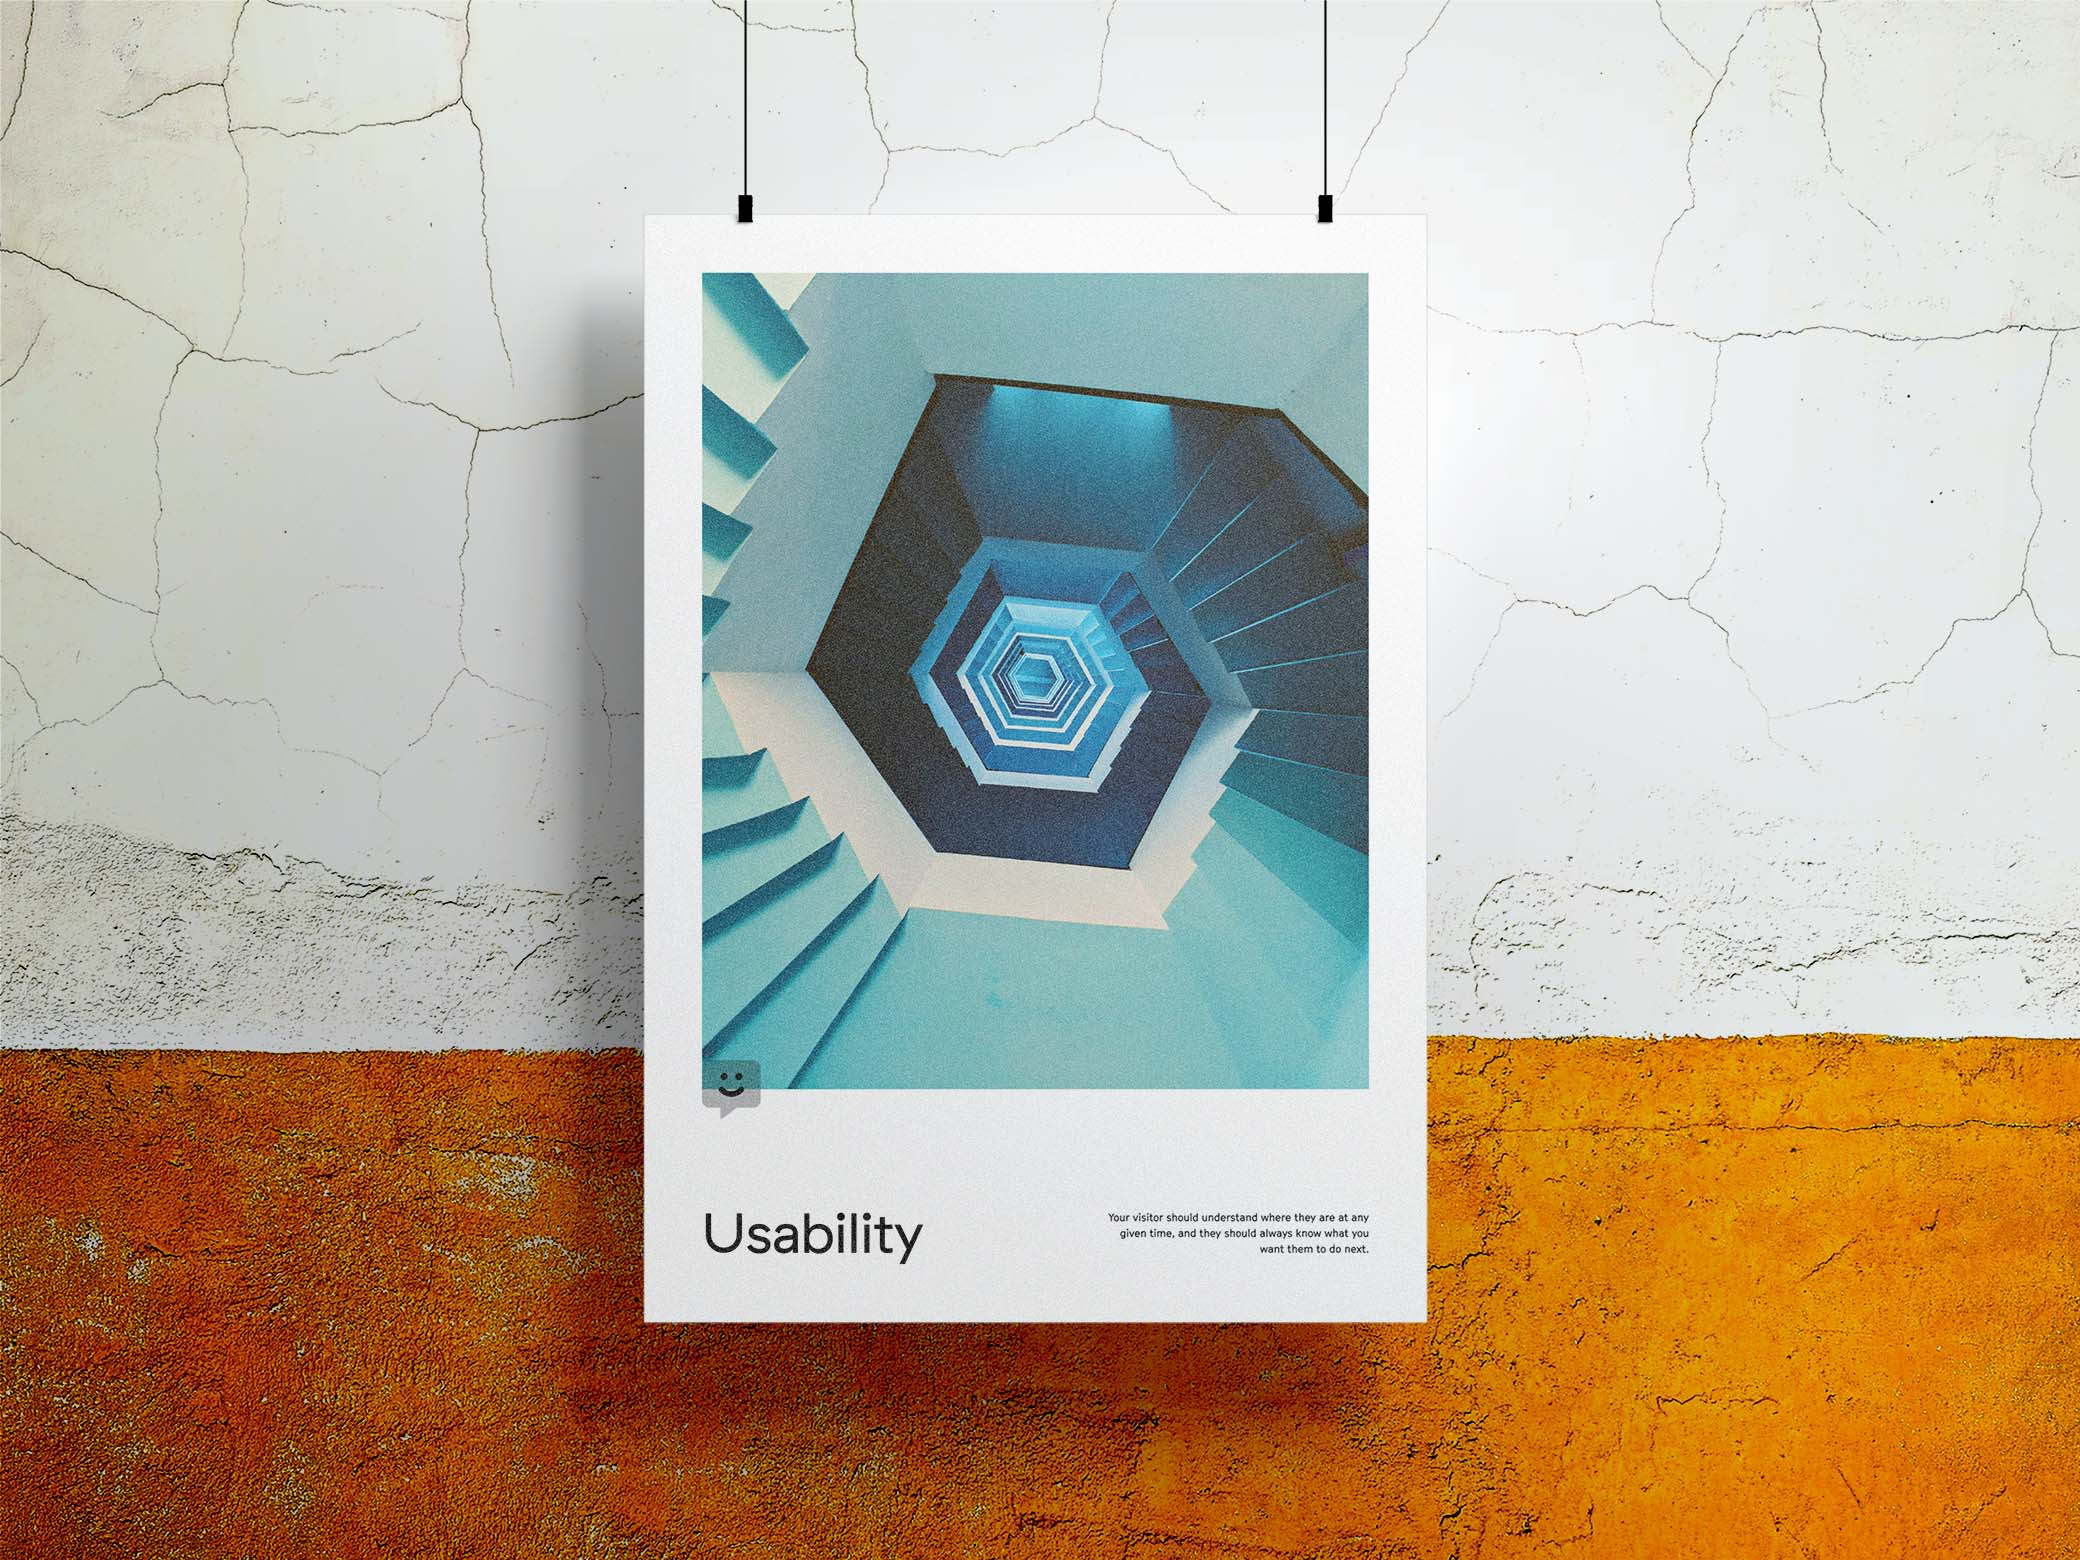 Usability poster with an image of a hexagonal staircase